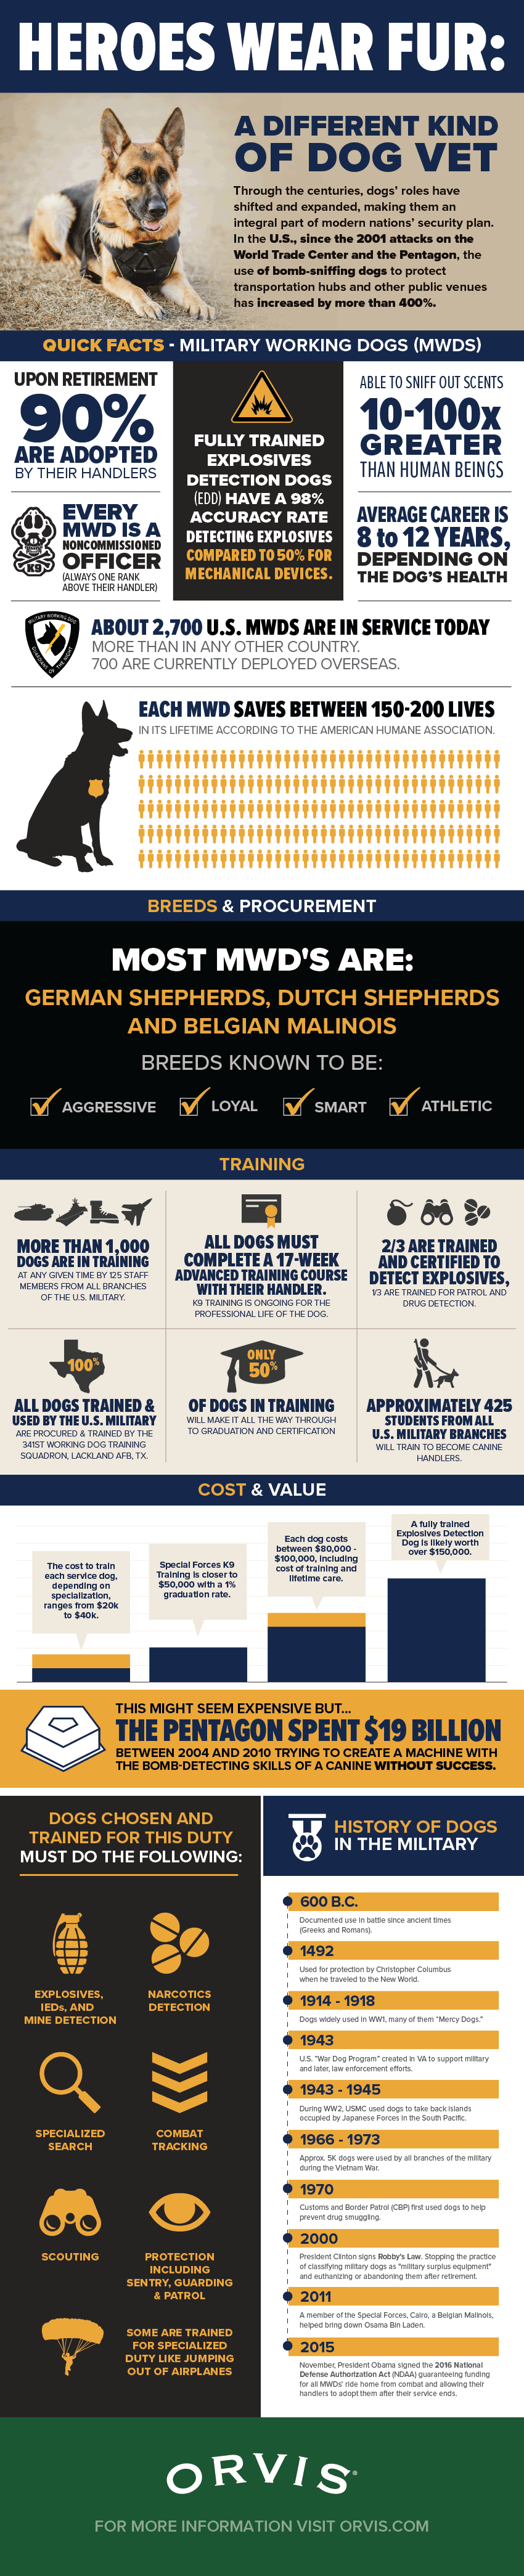 Know More About The Dogs In The Military - Infographic